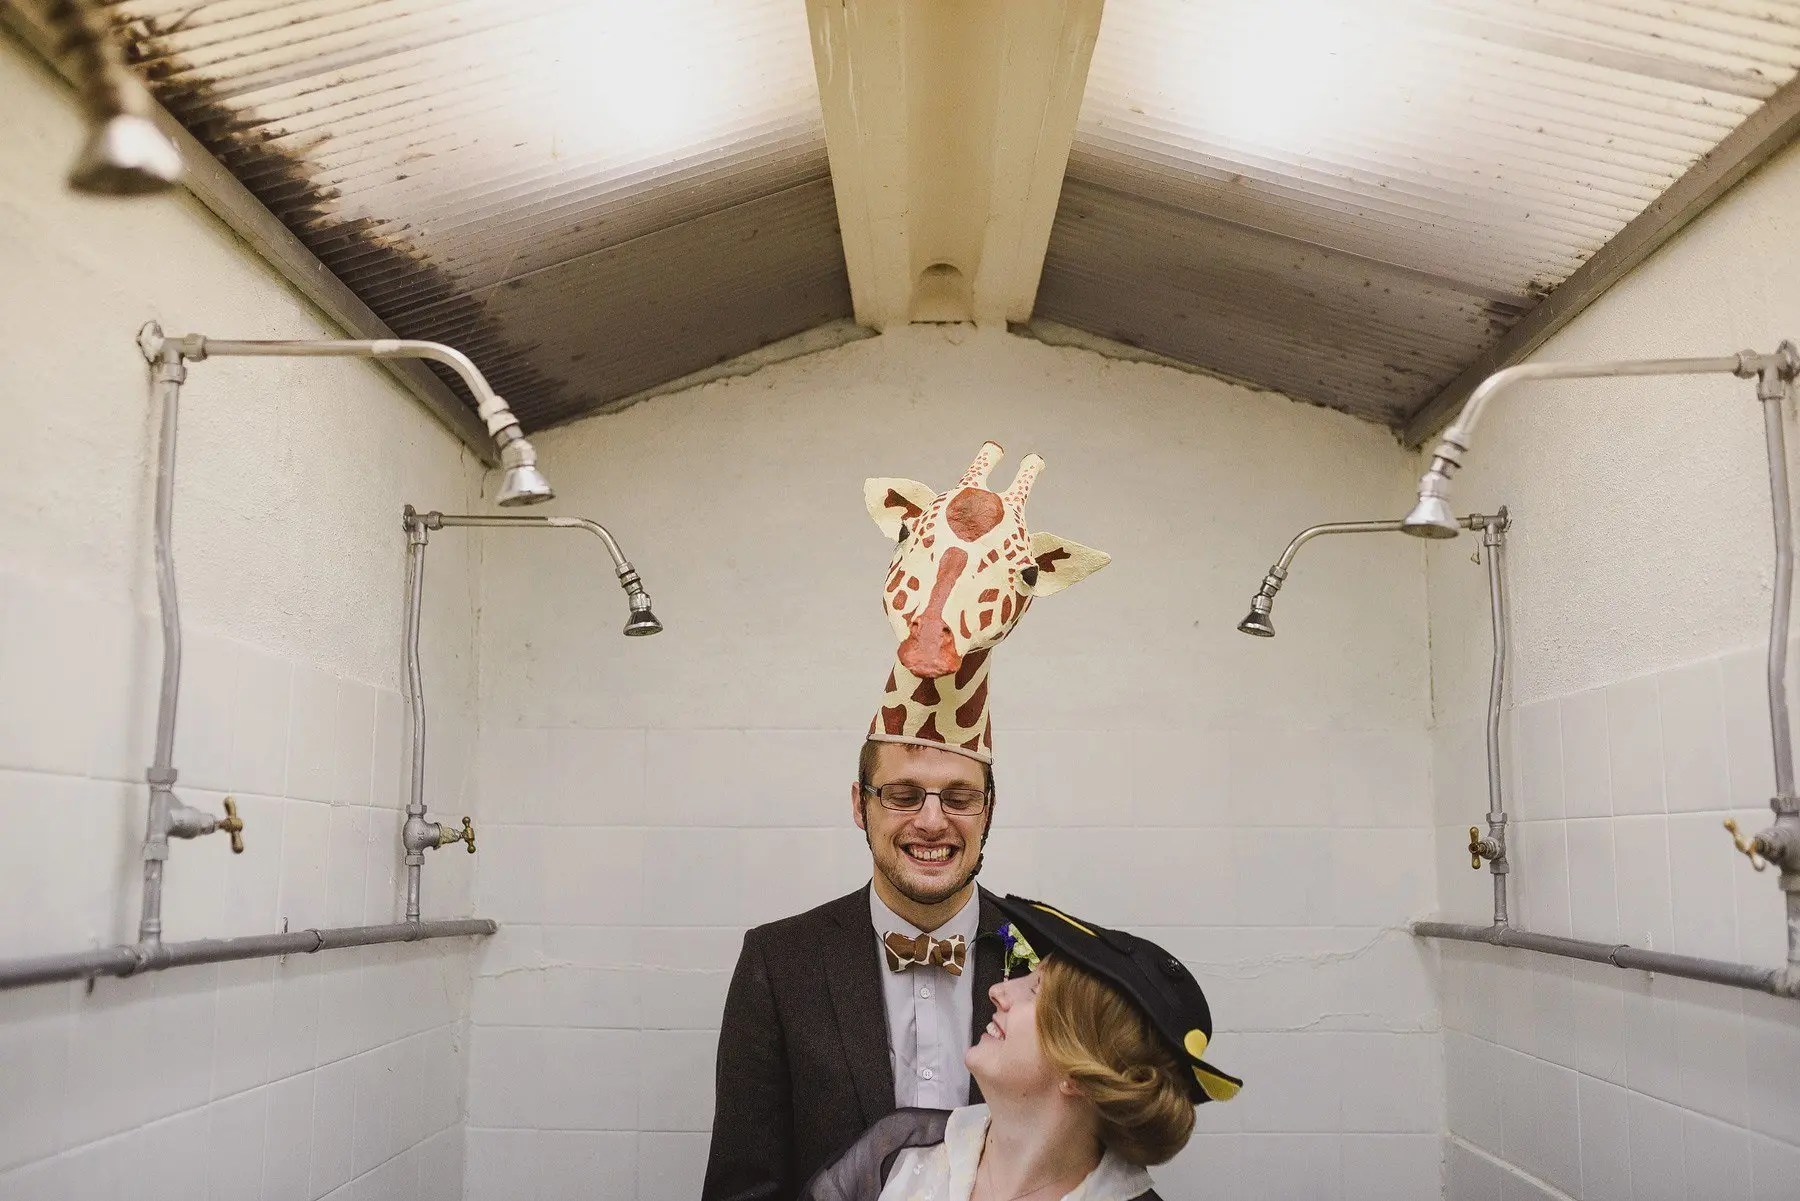 streatham and marlborough cricket club wedding portraits